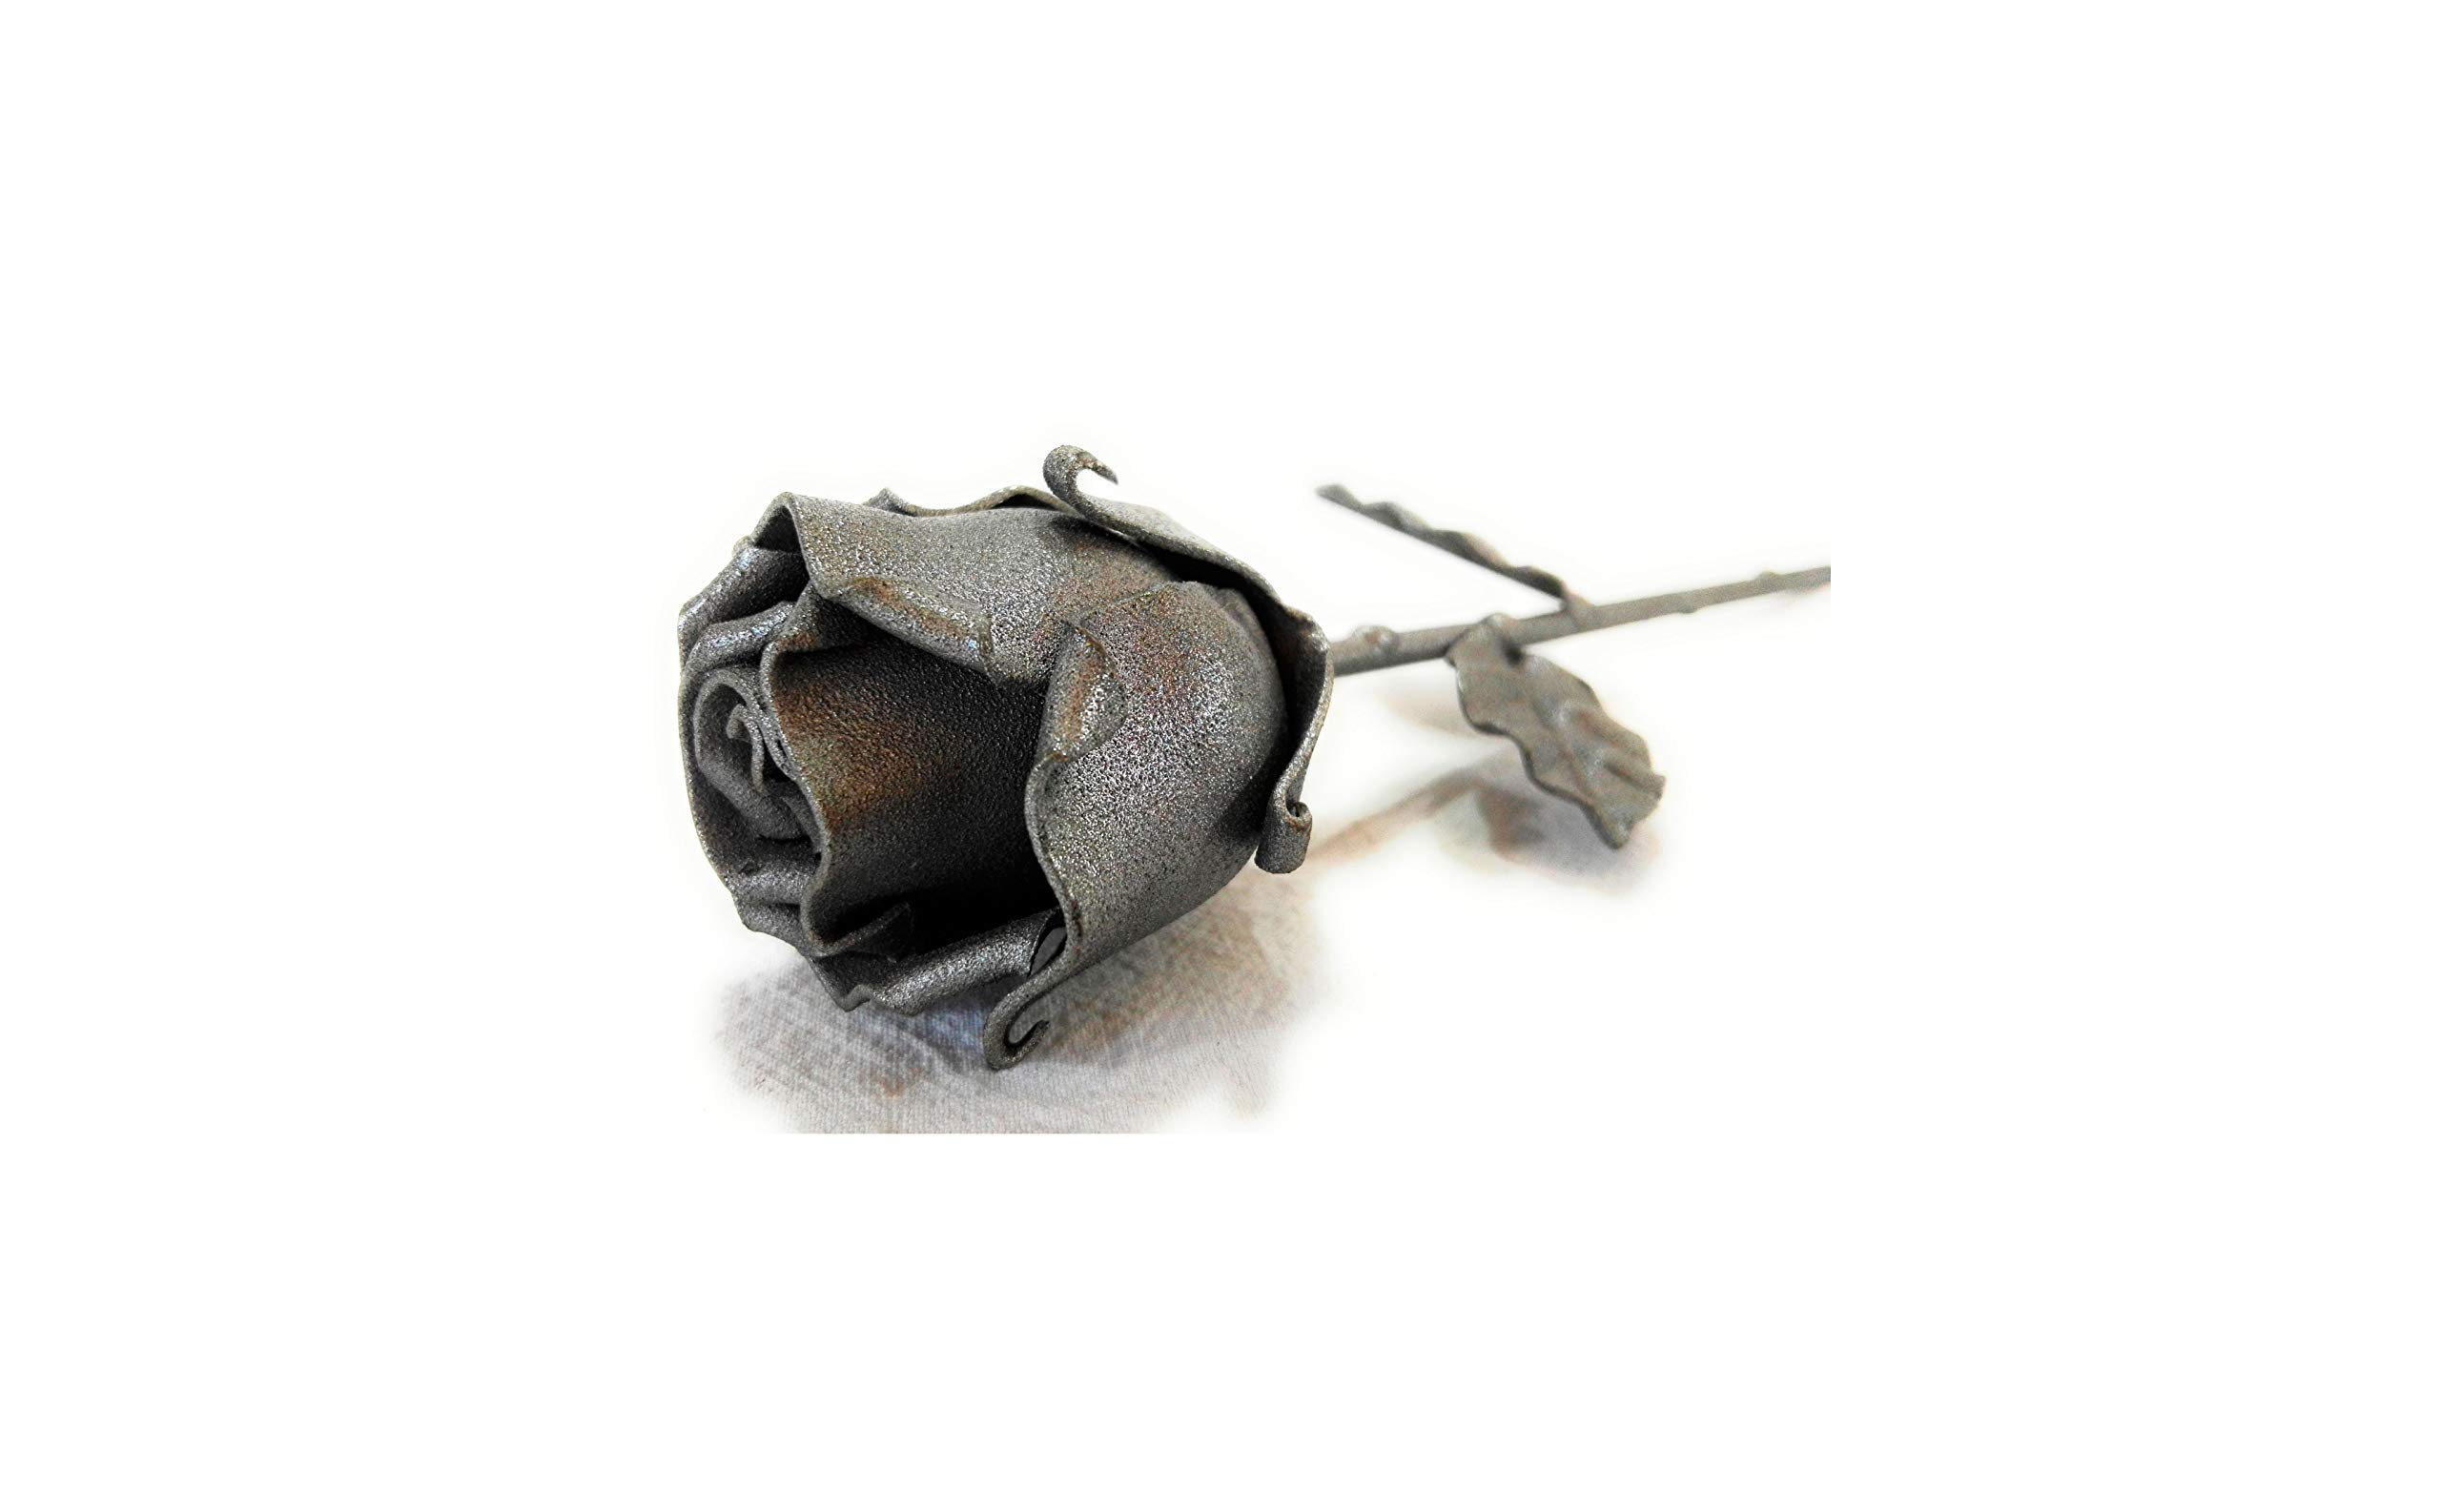 -Eternal-Rose-Hand-Forged-Wrought-Iron-GrayIdeal-gift-for-Valentines-Day-Mothers-Day-Couple-Birthday-Christmas-Wedding-Day-Anniversary-Decor-IndoorOutdoor